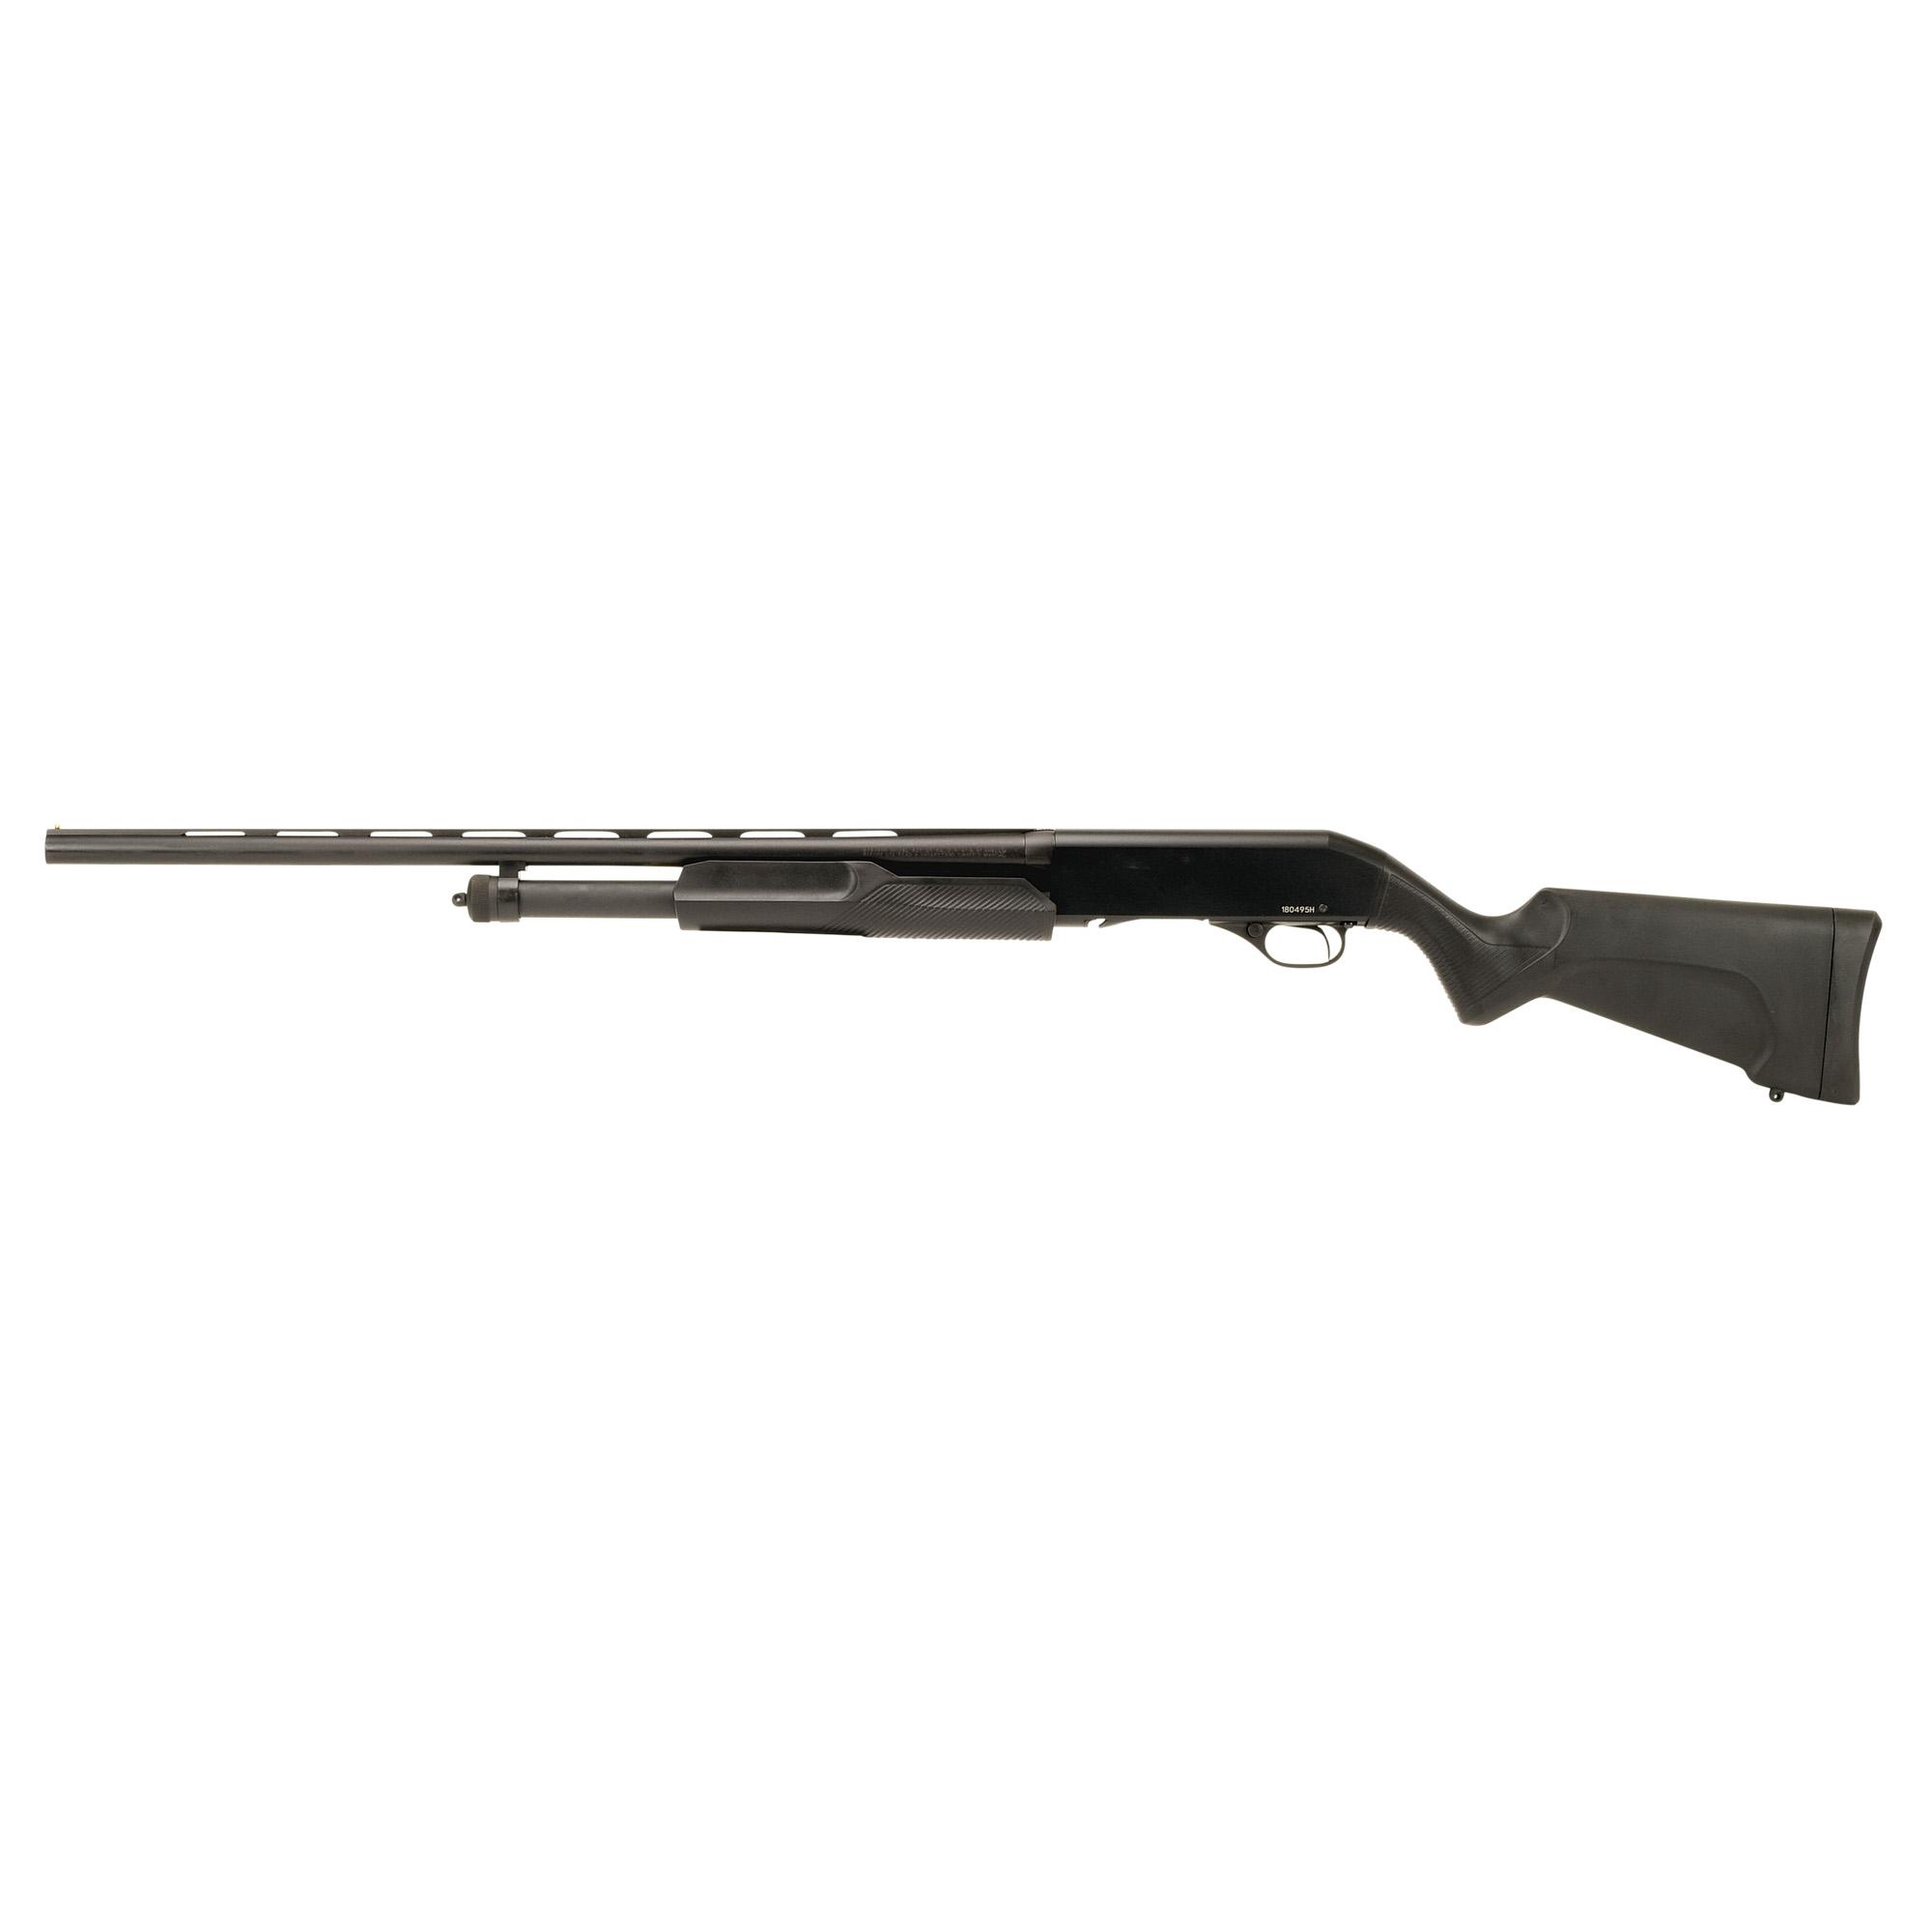 "Model 320 shotguns feature a smooth"" reliable pump action"" proven rotary bolt and dual slide-bars. Whether you're shooting trap or upland birds"" you can always count on reliable performance from the Stevens 320."